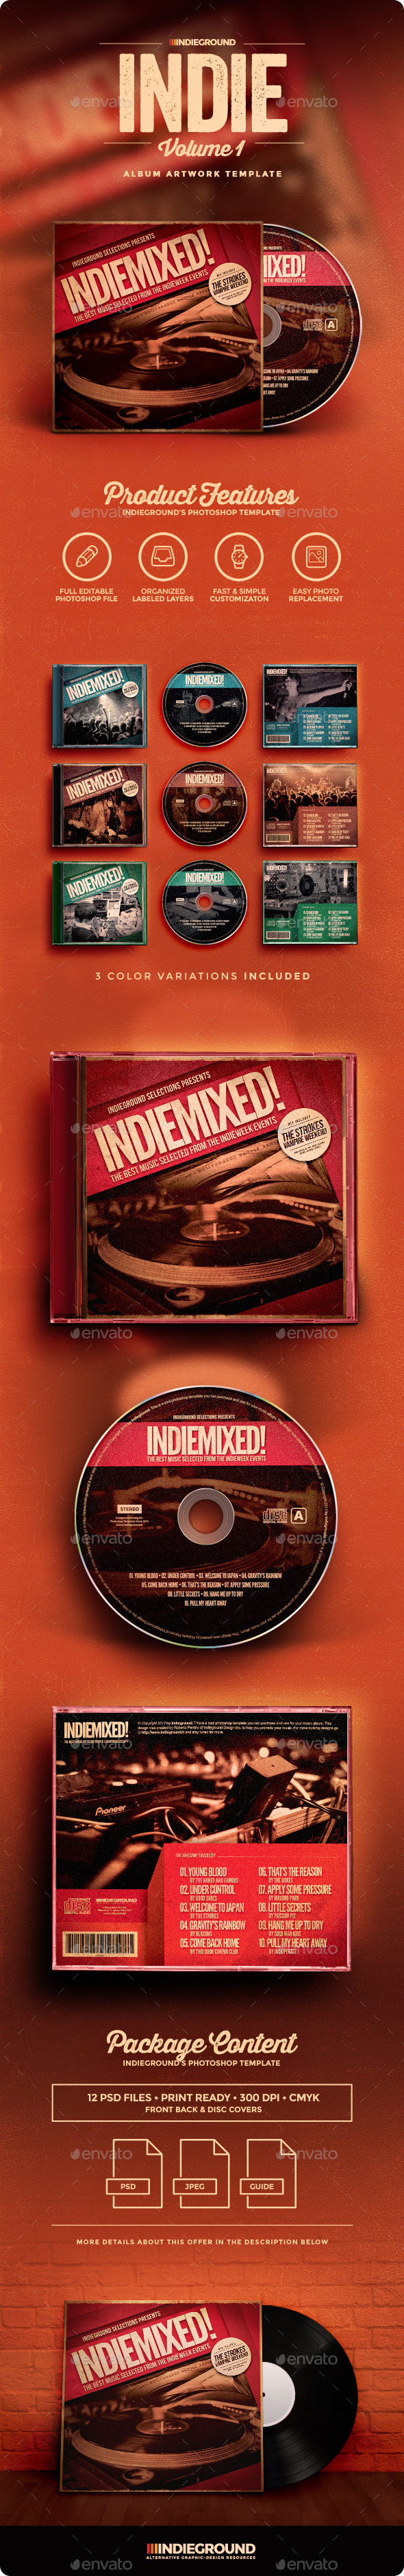 Indie CD Album Artwork - CD & DVD Artwork Print Templates